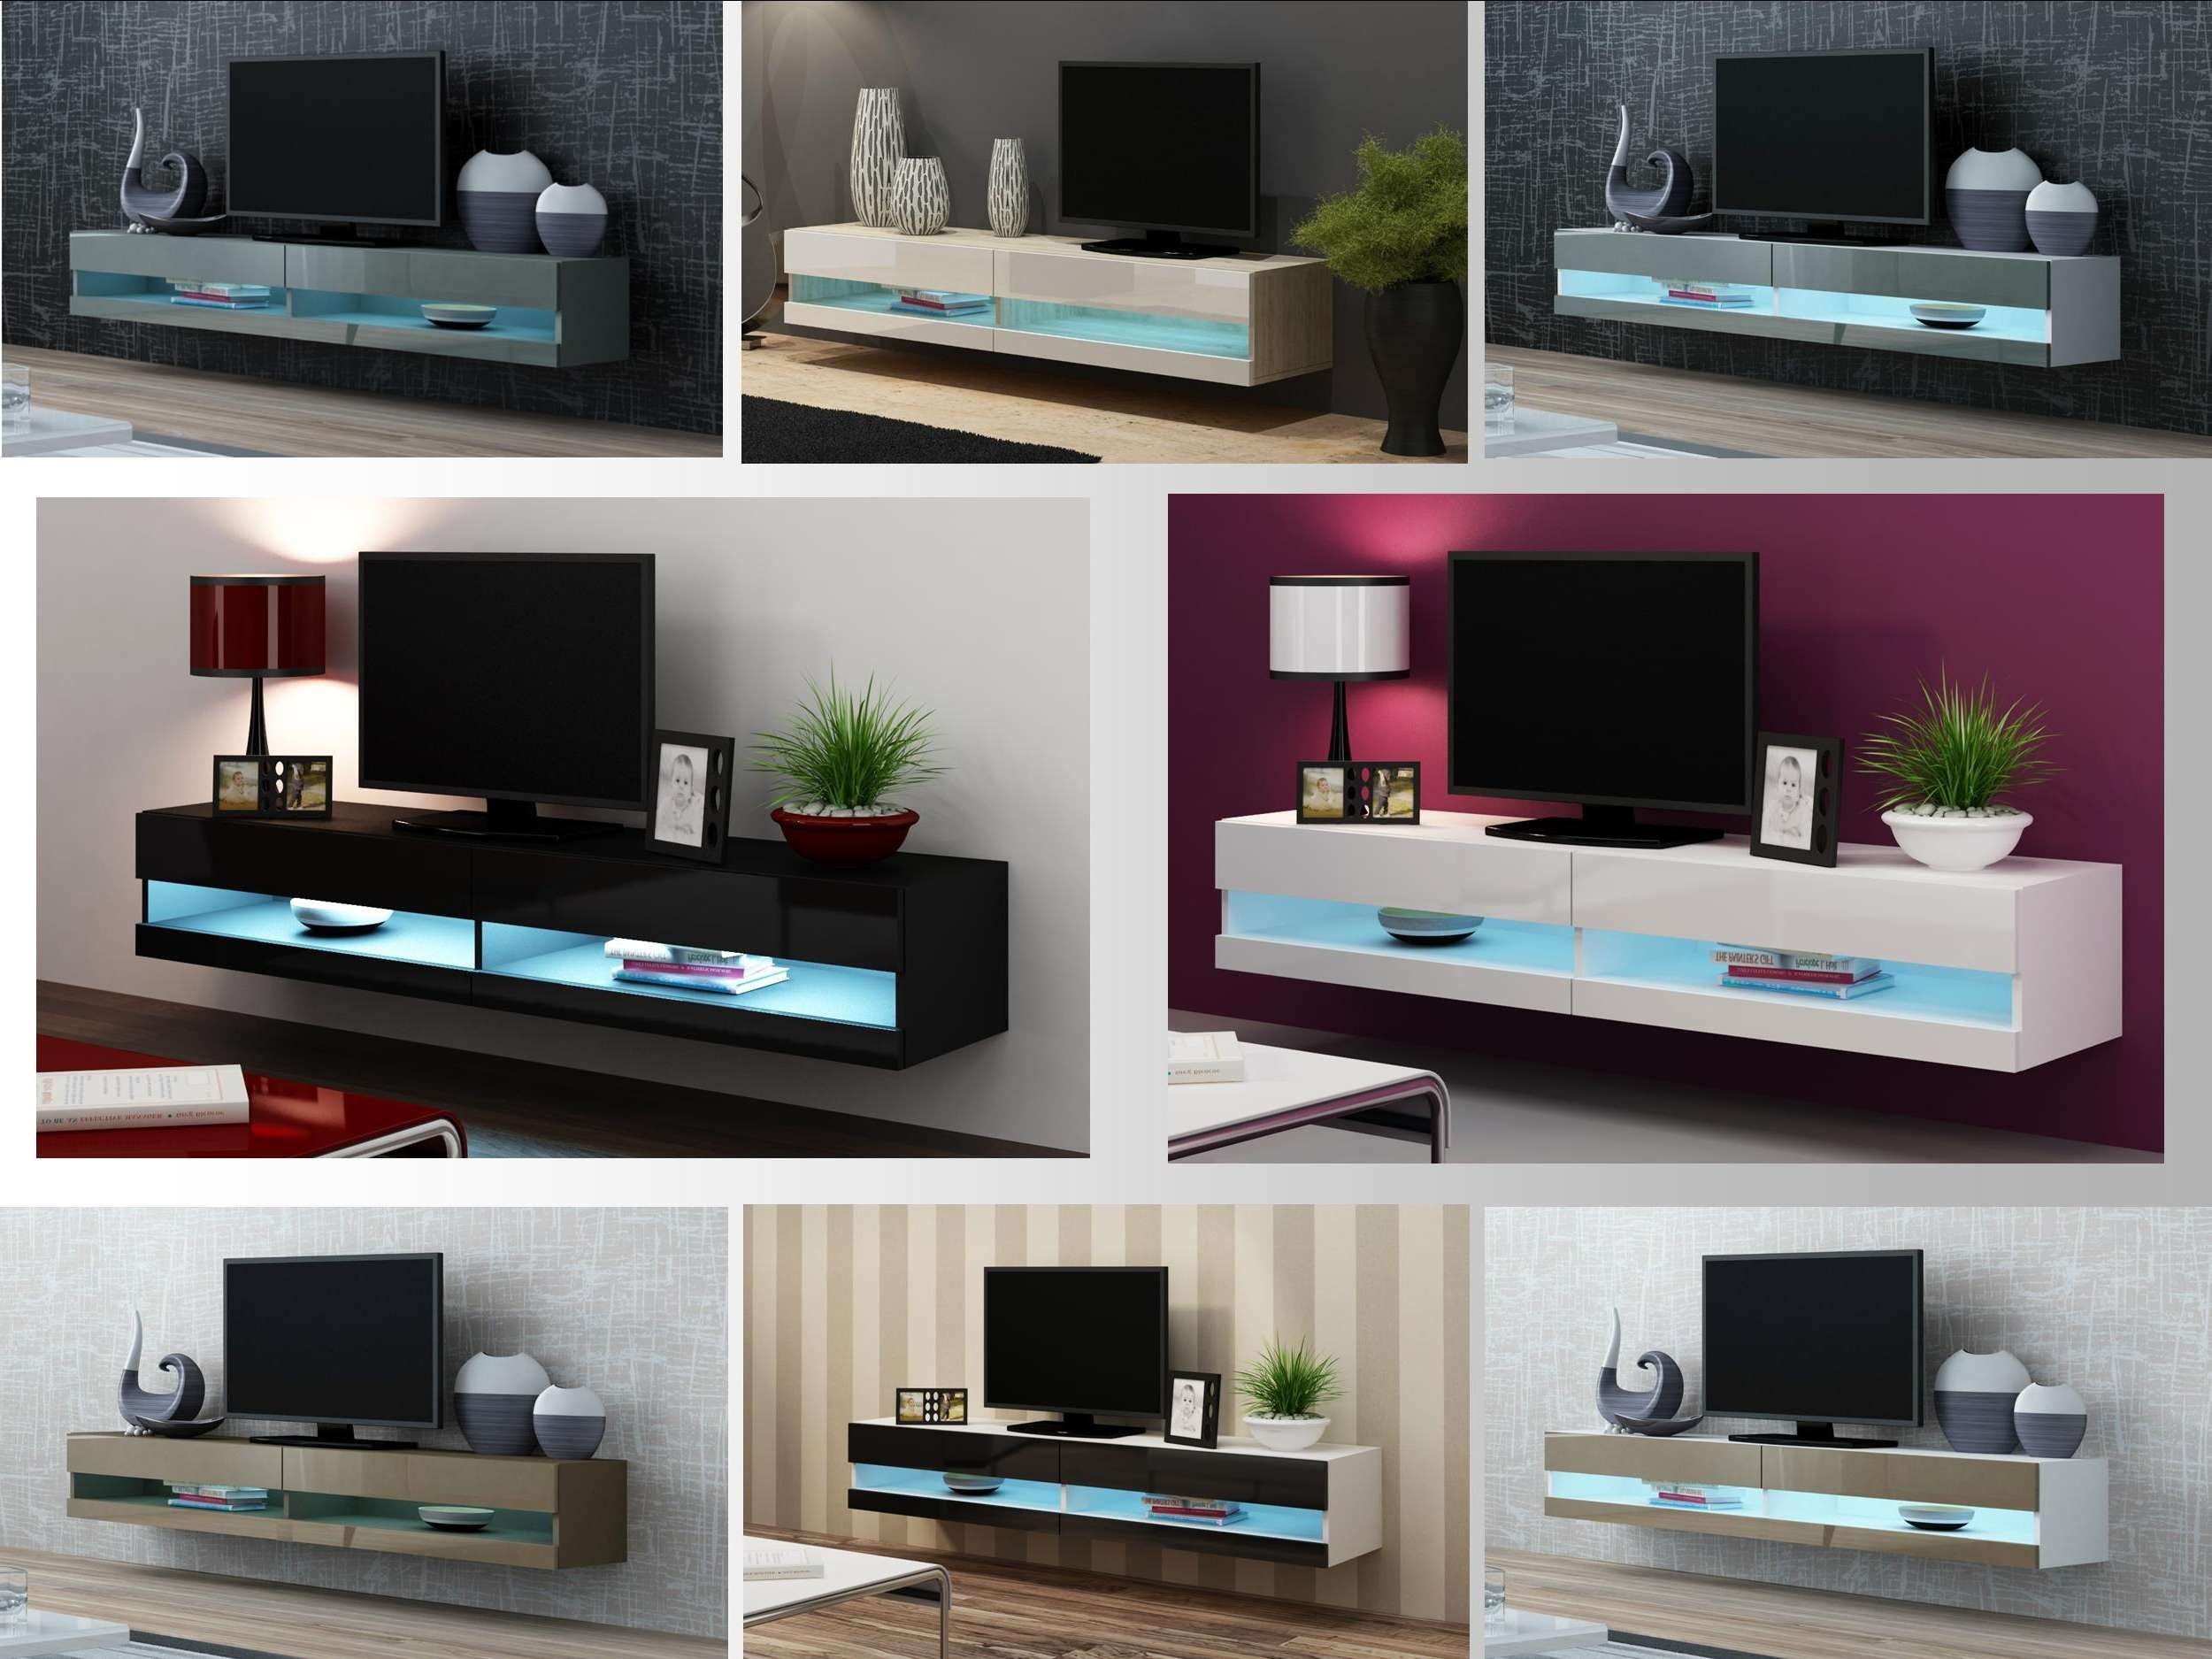 High Gloss Tv Stand Cabinet With Led Lights | Entertainment With White High Gloss Tv Stands Unit Cabinet (View 6 of 15)